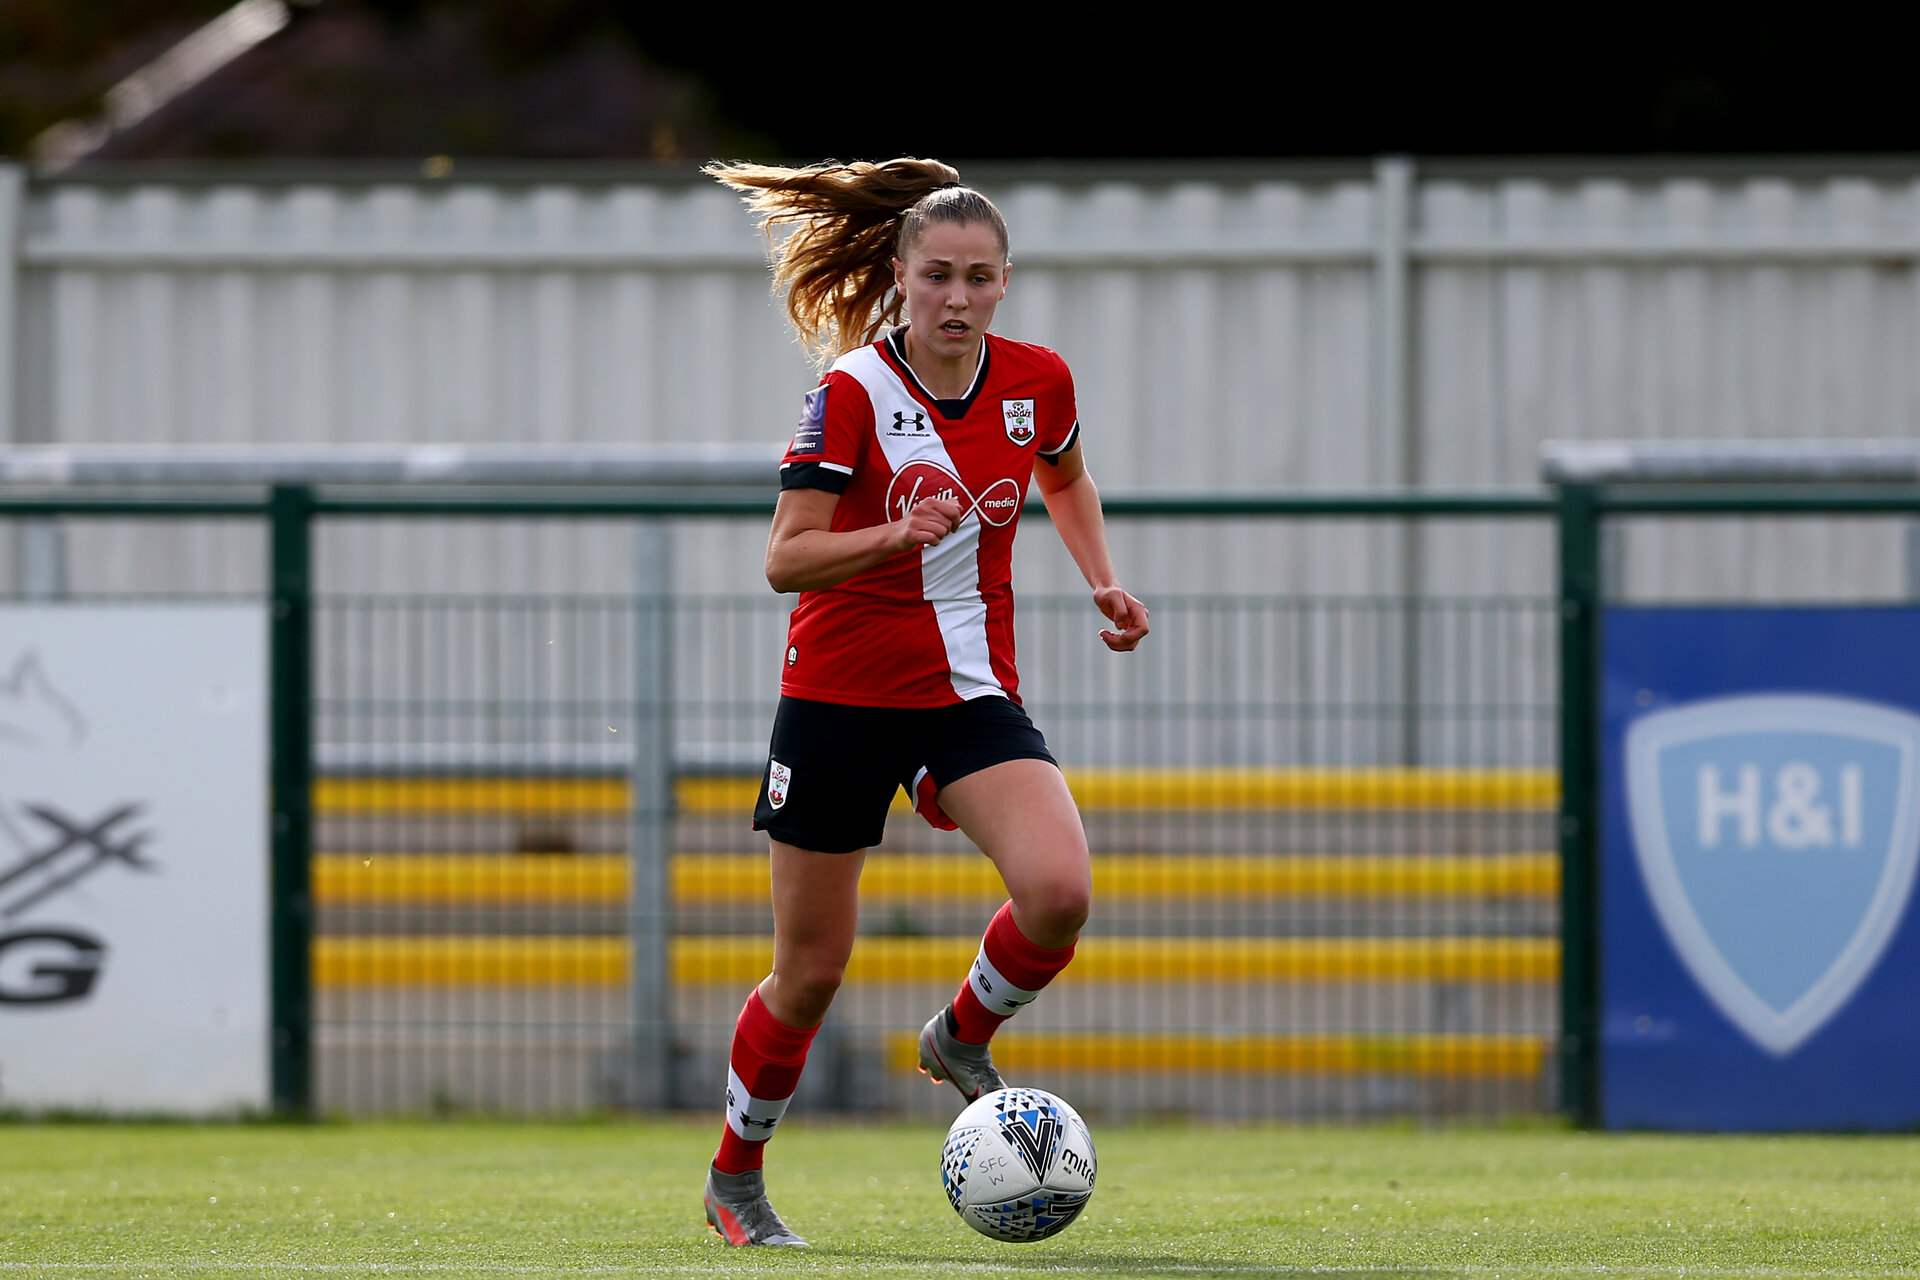 SOUTHAMPTON, ENGLAND - OCTOBER 11: Alisha Ware of Southampton during FAWNL match between Southampton Women and Exeter City at Snows Stadium on October 11, 2020 in Southampton, England. (Photo by Isabelle Field/Southampton FC via Getty Images)